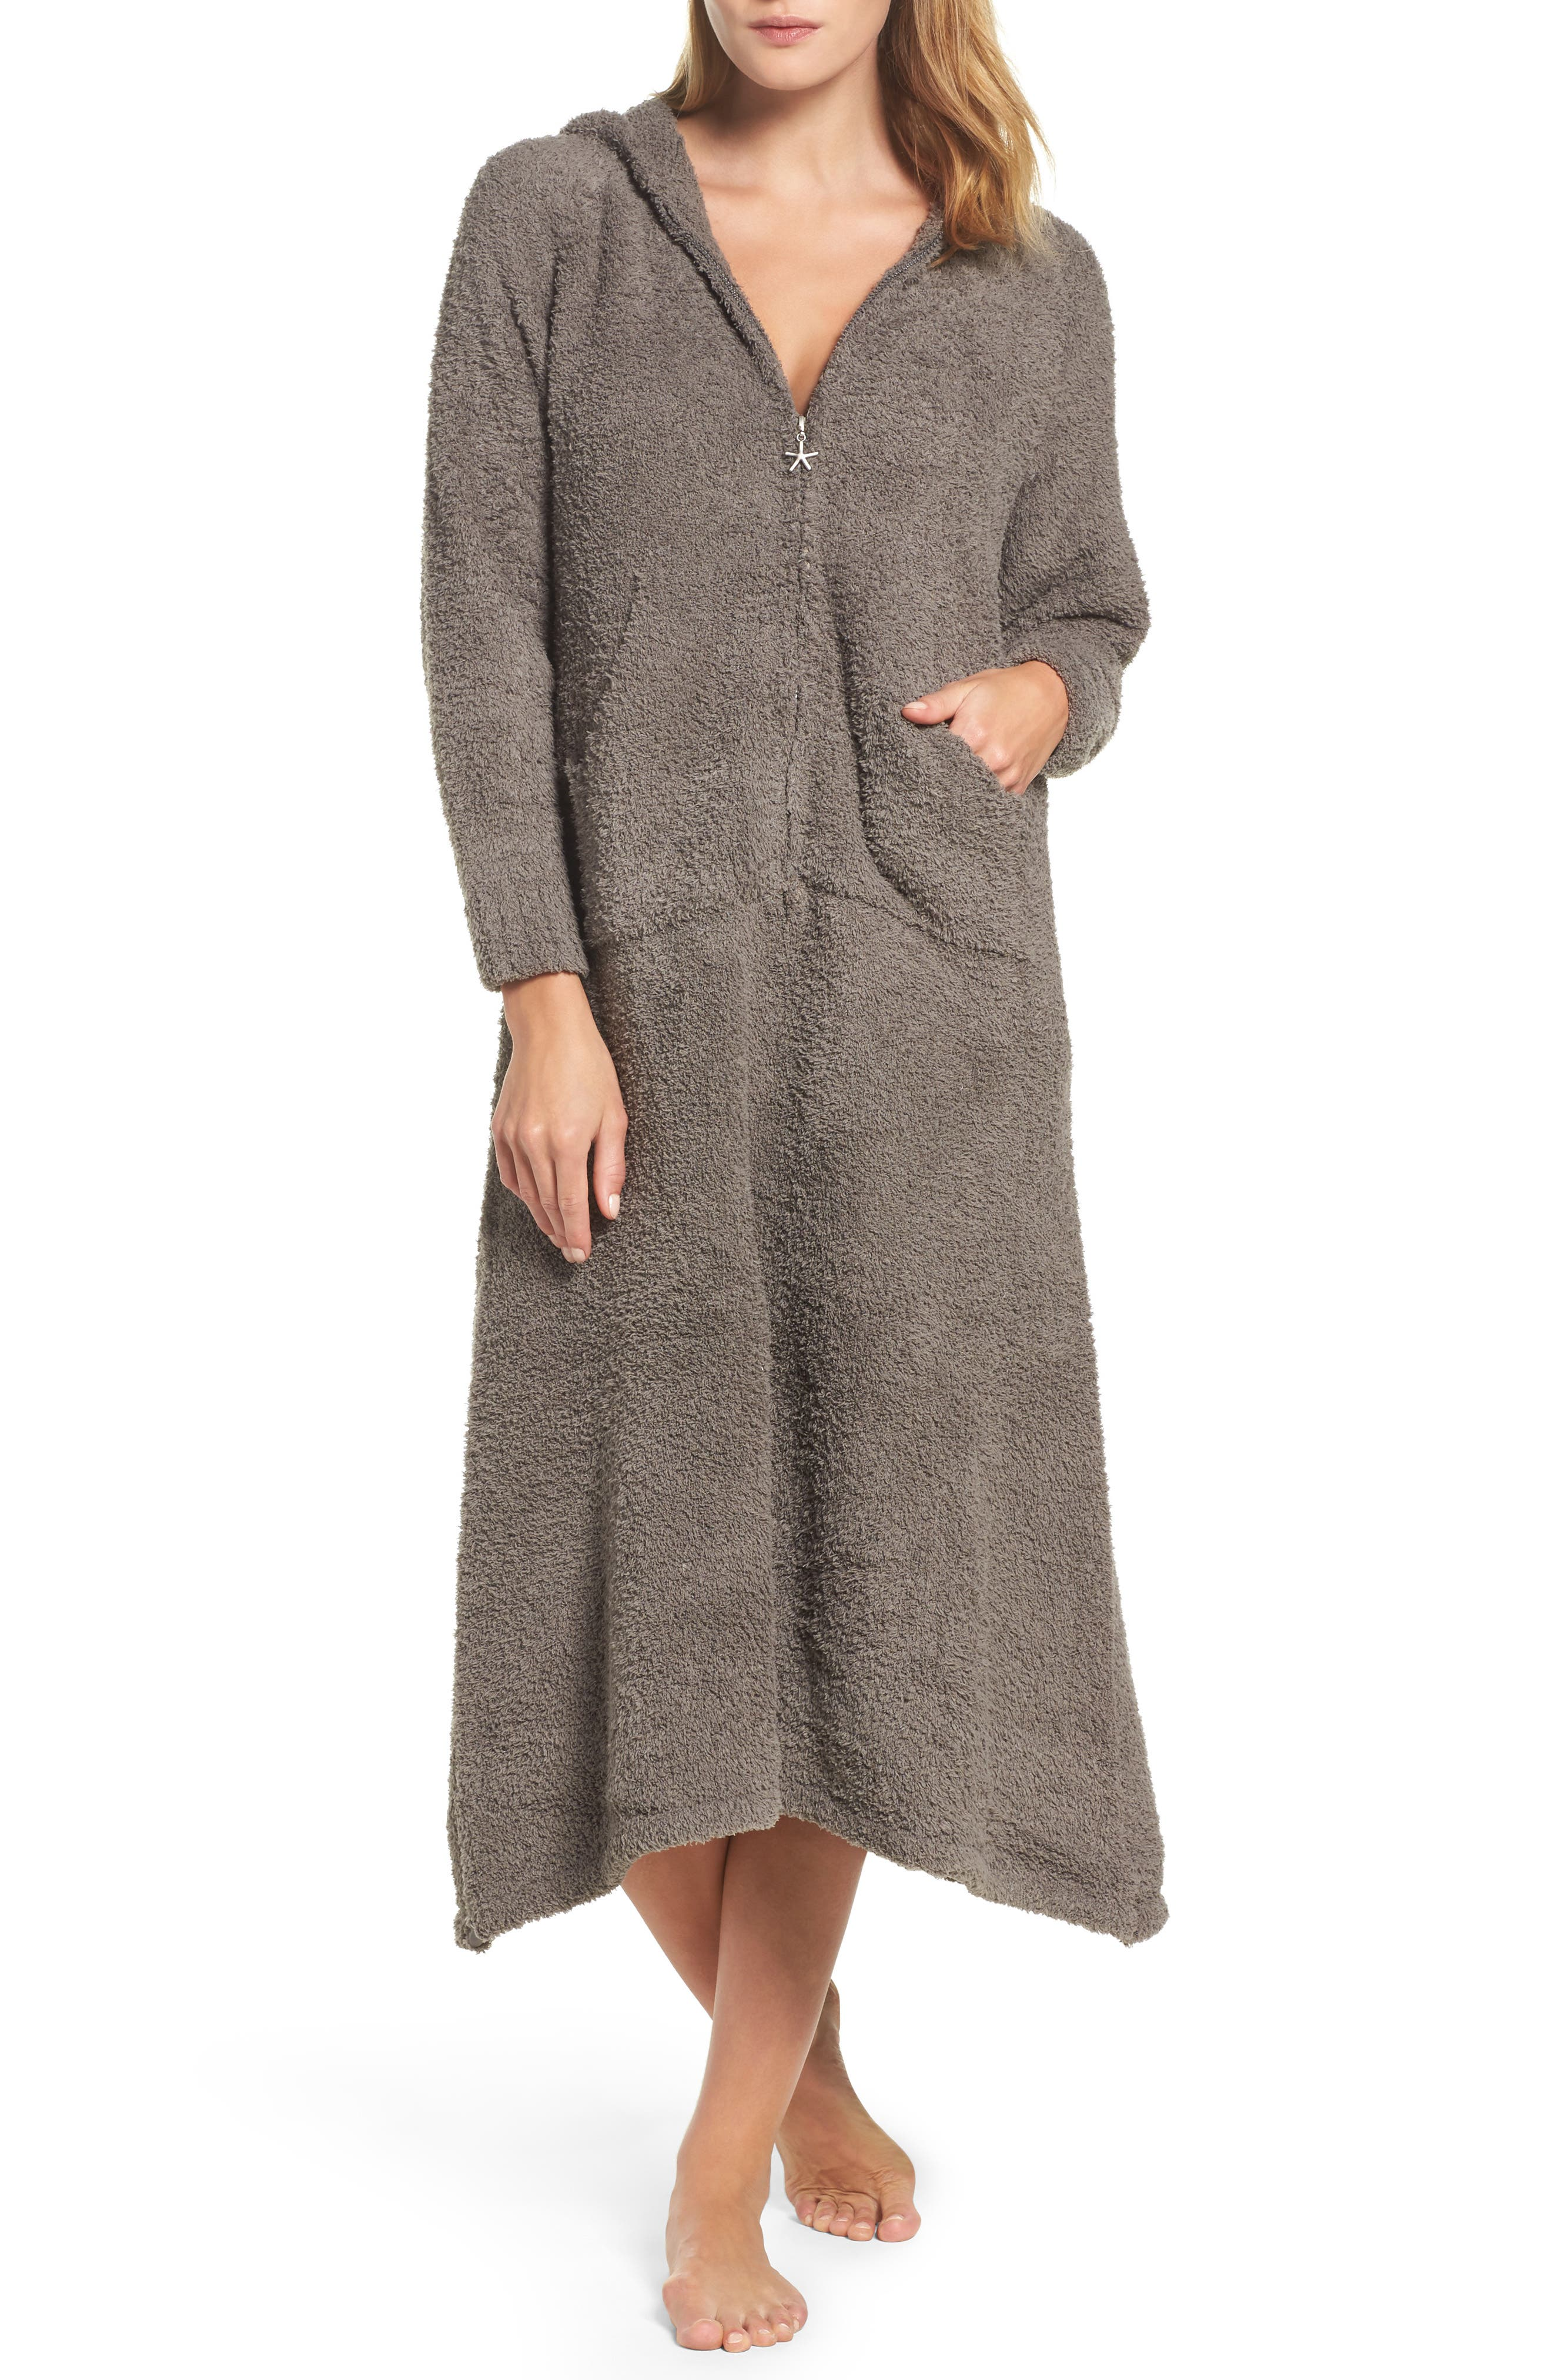 CozyChic<sup>®</sup> Hooded Zip Robe,                             Main thumbnail 1, color,                             020